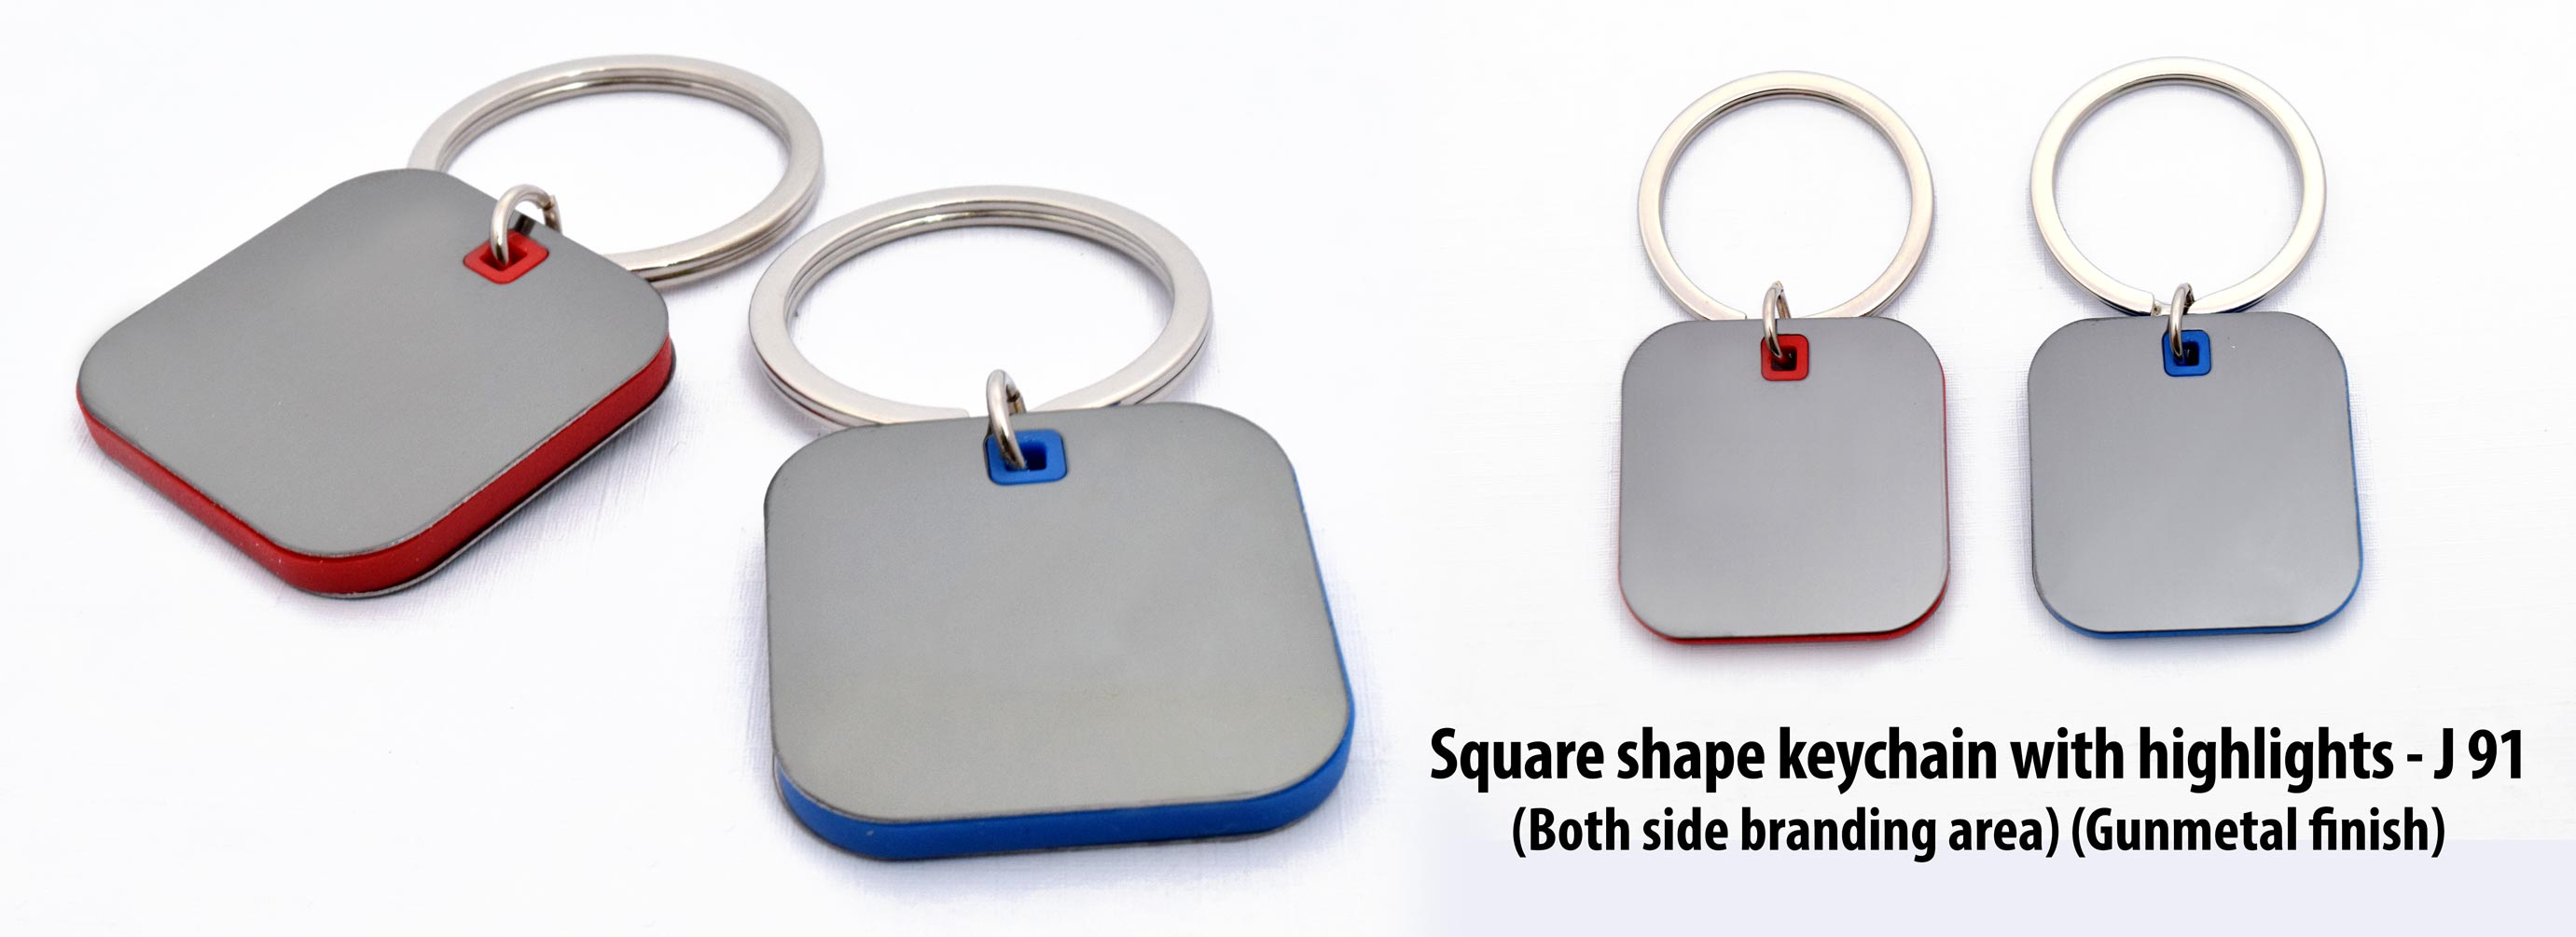 J91 - Square shape keychain with highlights